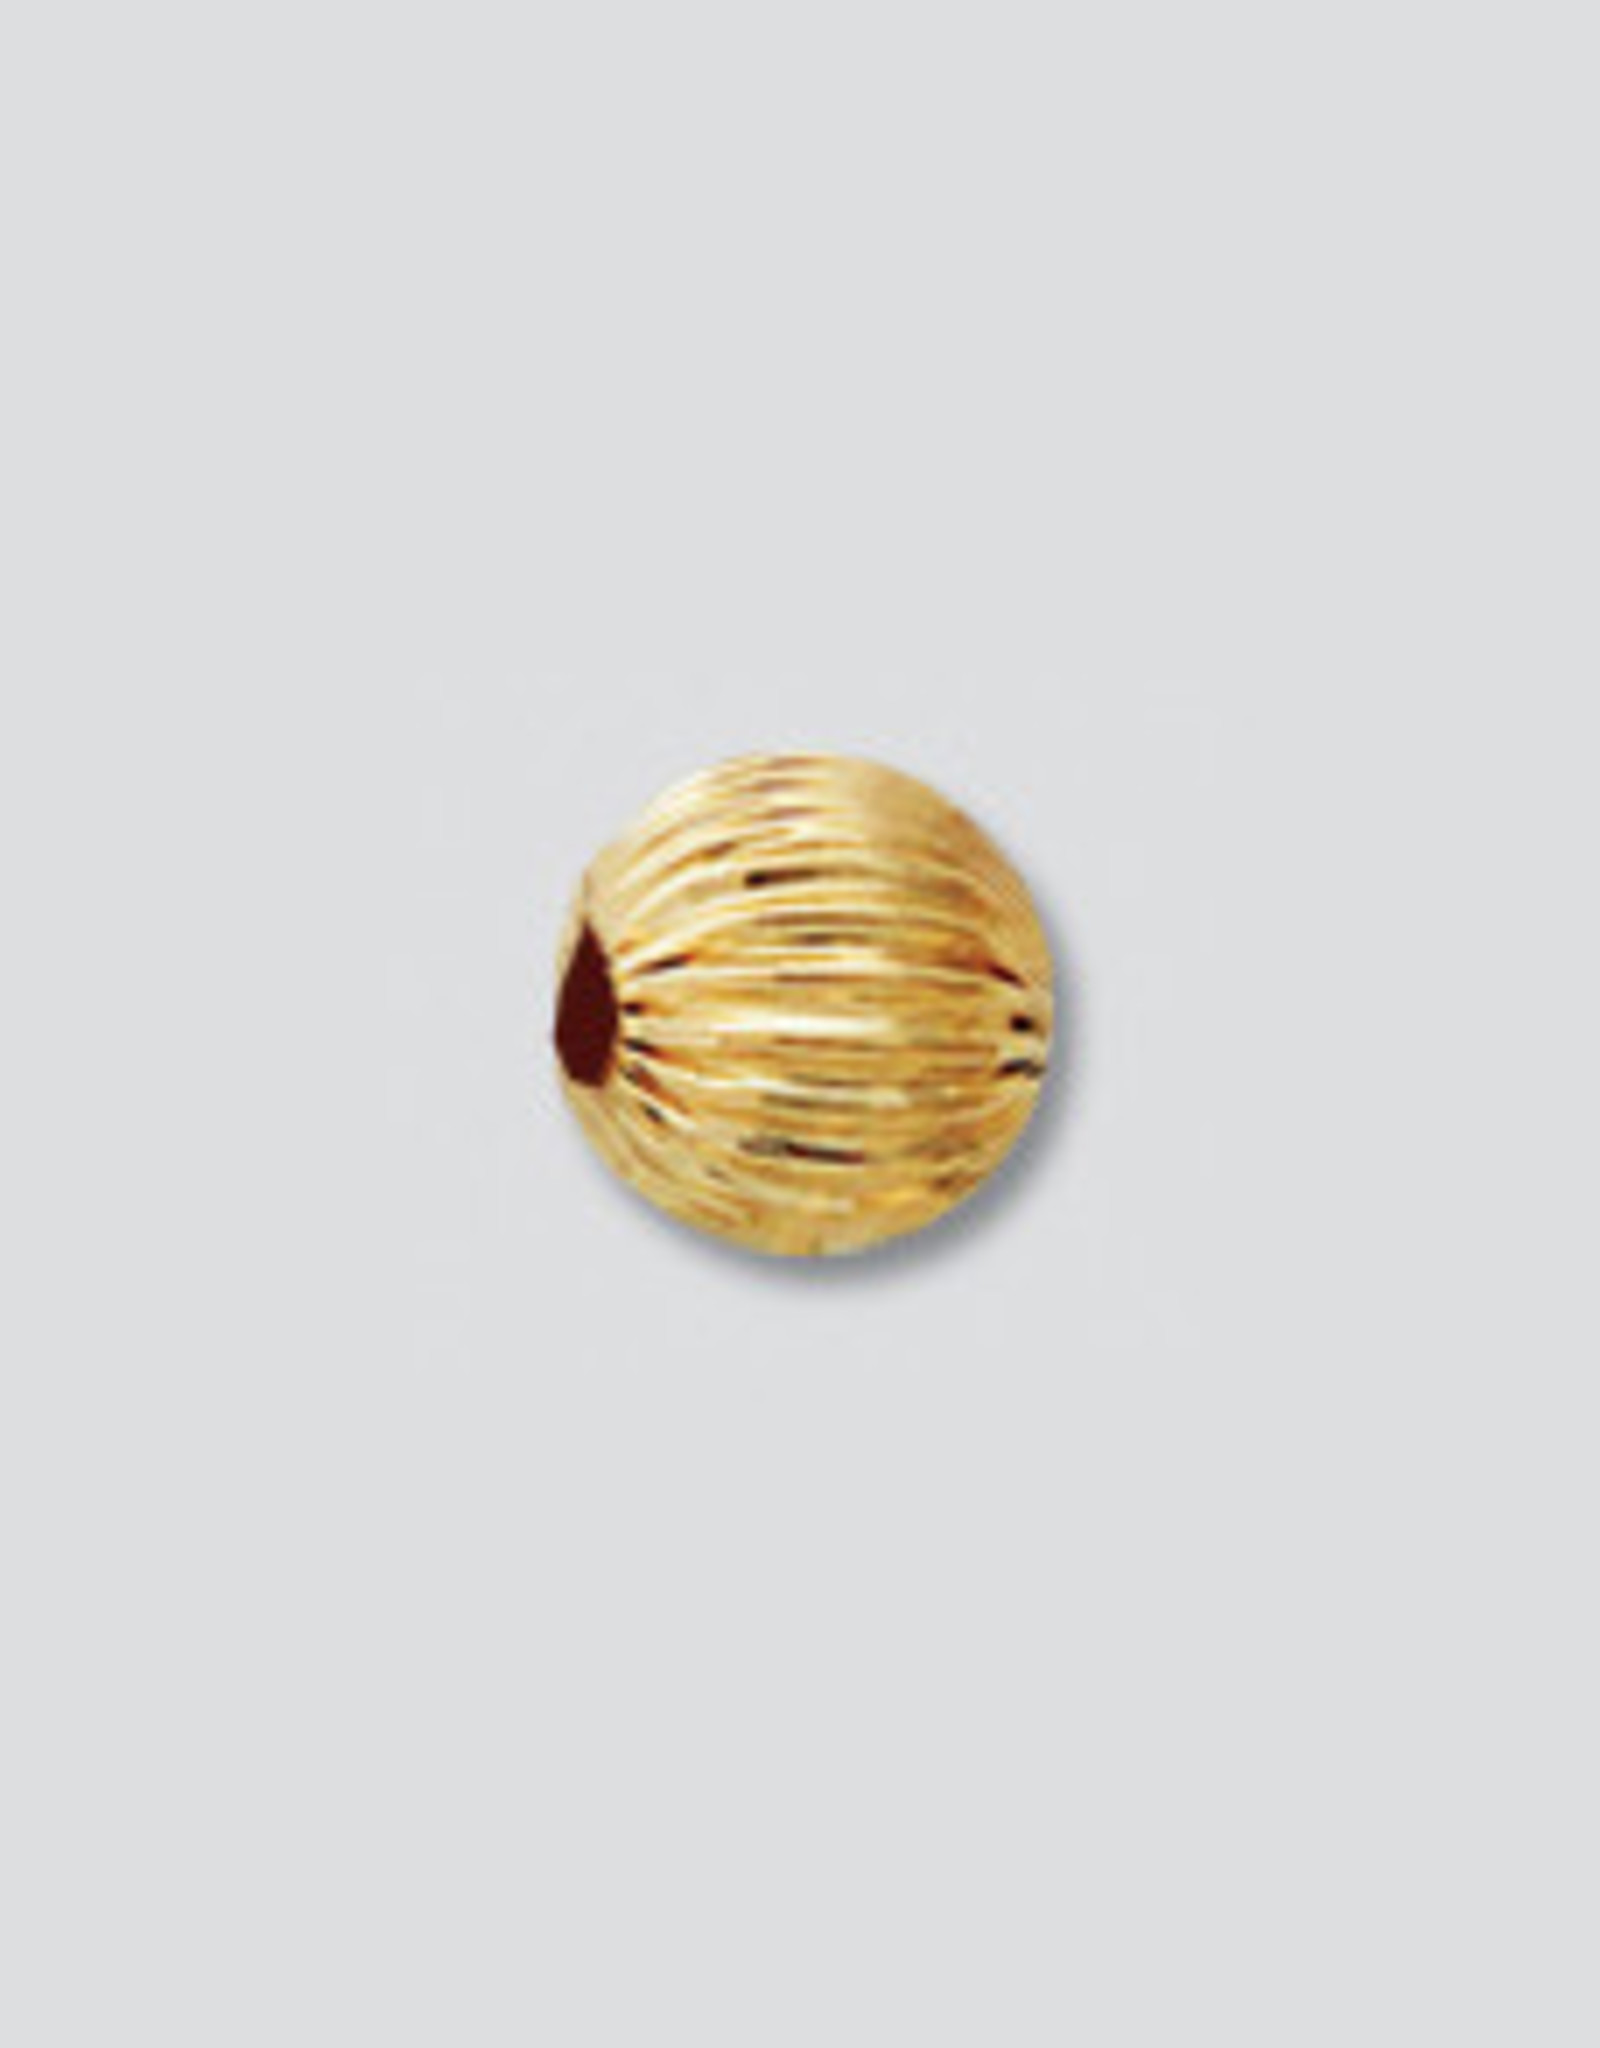 6mm Rounds Straight Corregated 14K Gold Filled Qty 6